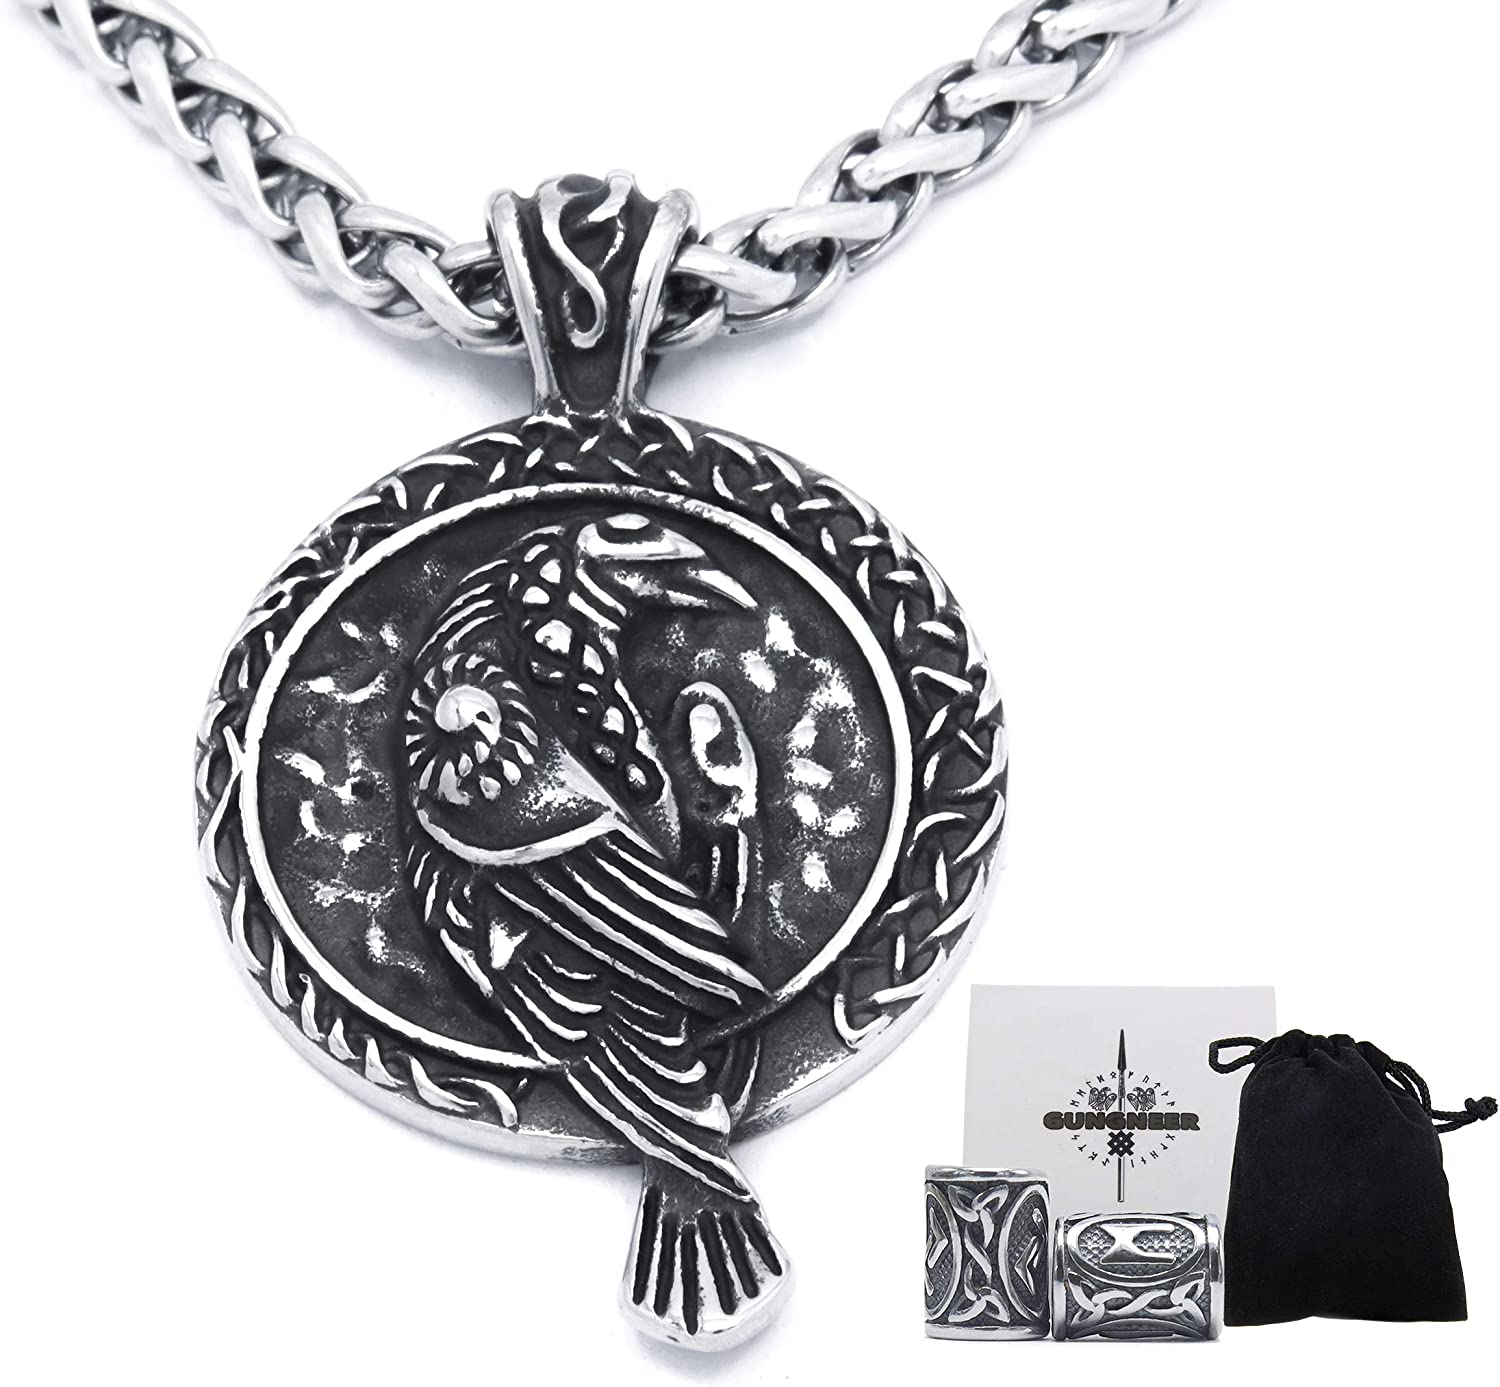 GUNGNEER Viking Raven Necklace for Men Women Odin Cow Jewelry Pagan Wiccan Pendant Stainless Steel Keel Chain Strong Amulet